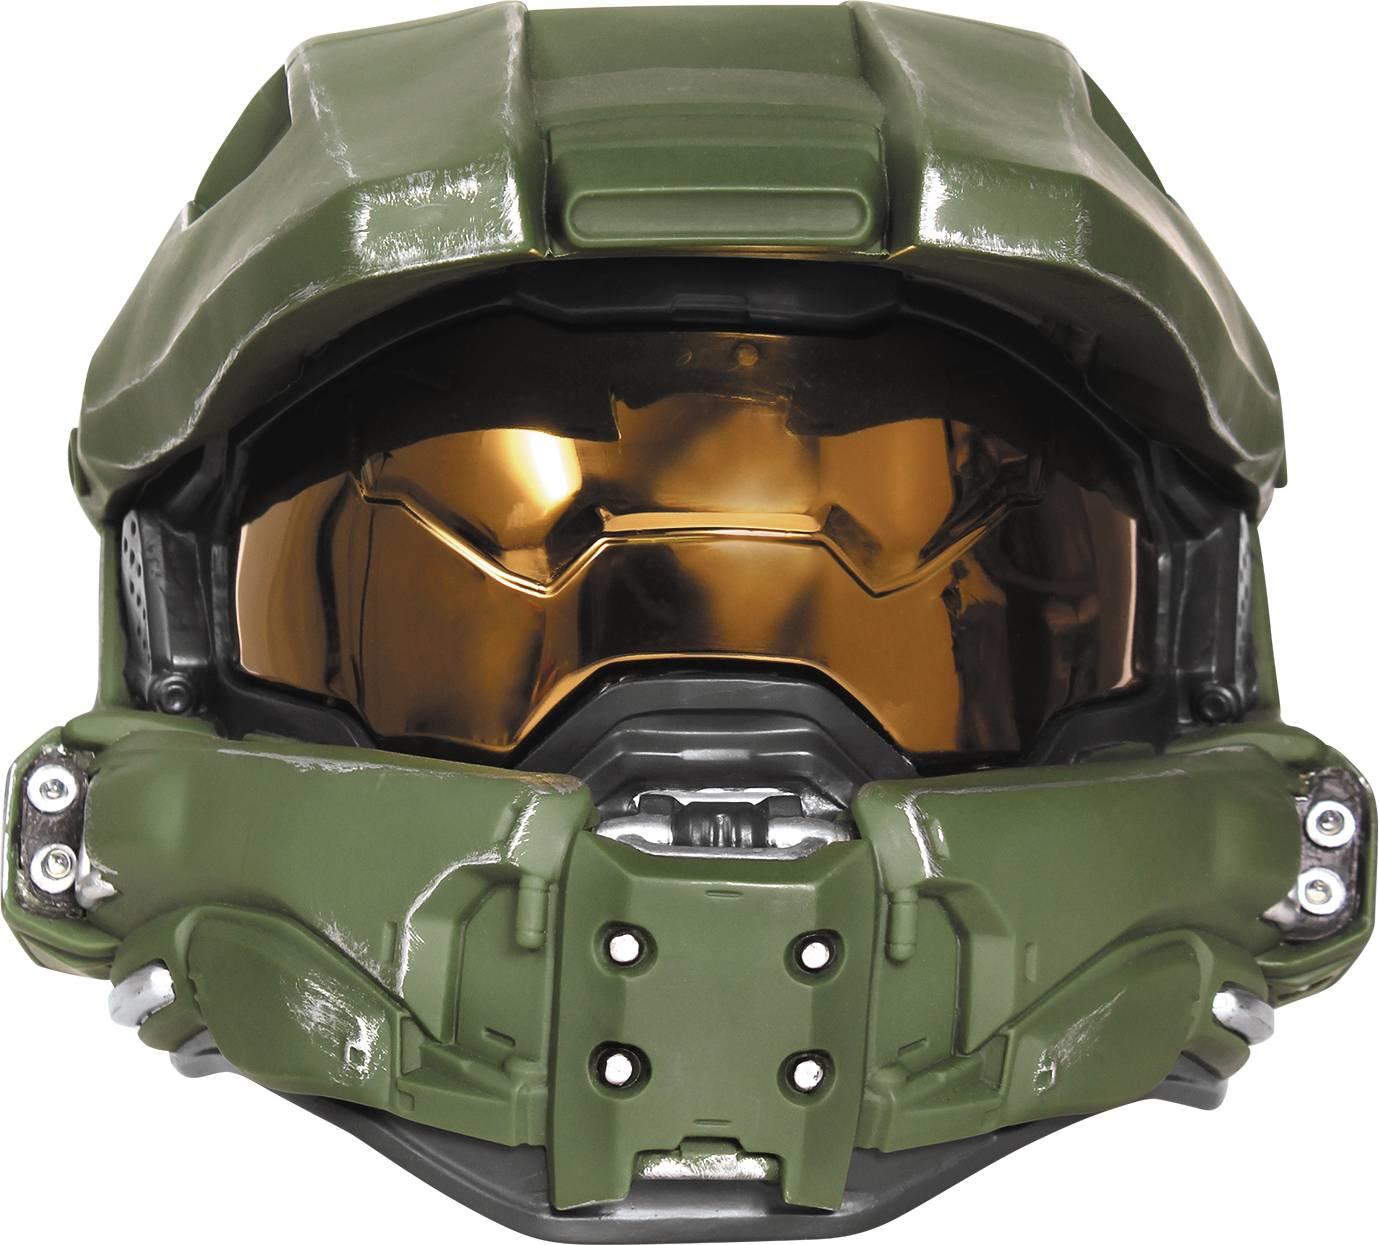 Halo Master Chief Adult Light Up Deluxe Helmet Halo Master